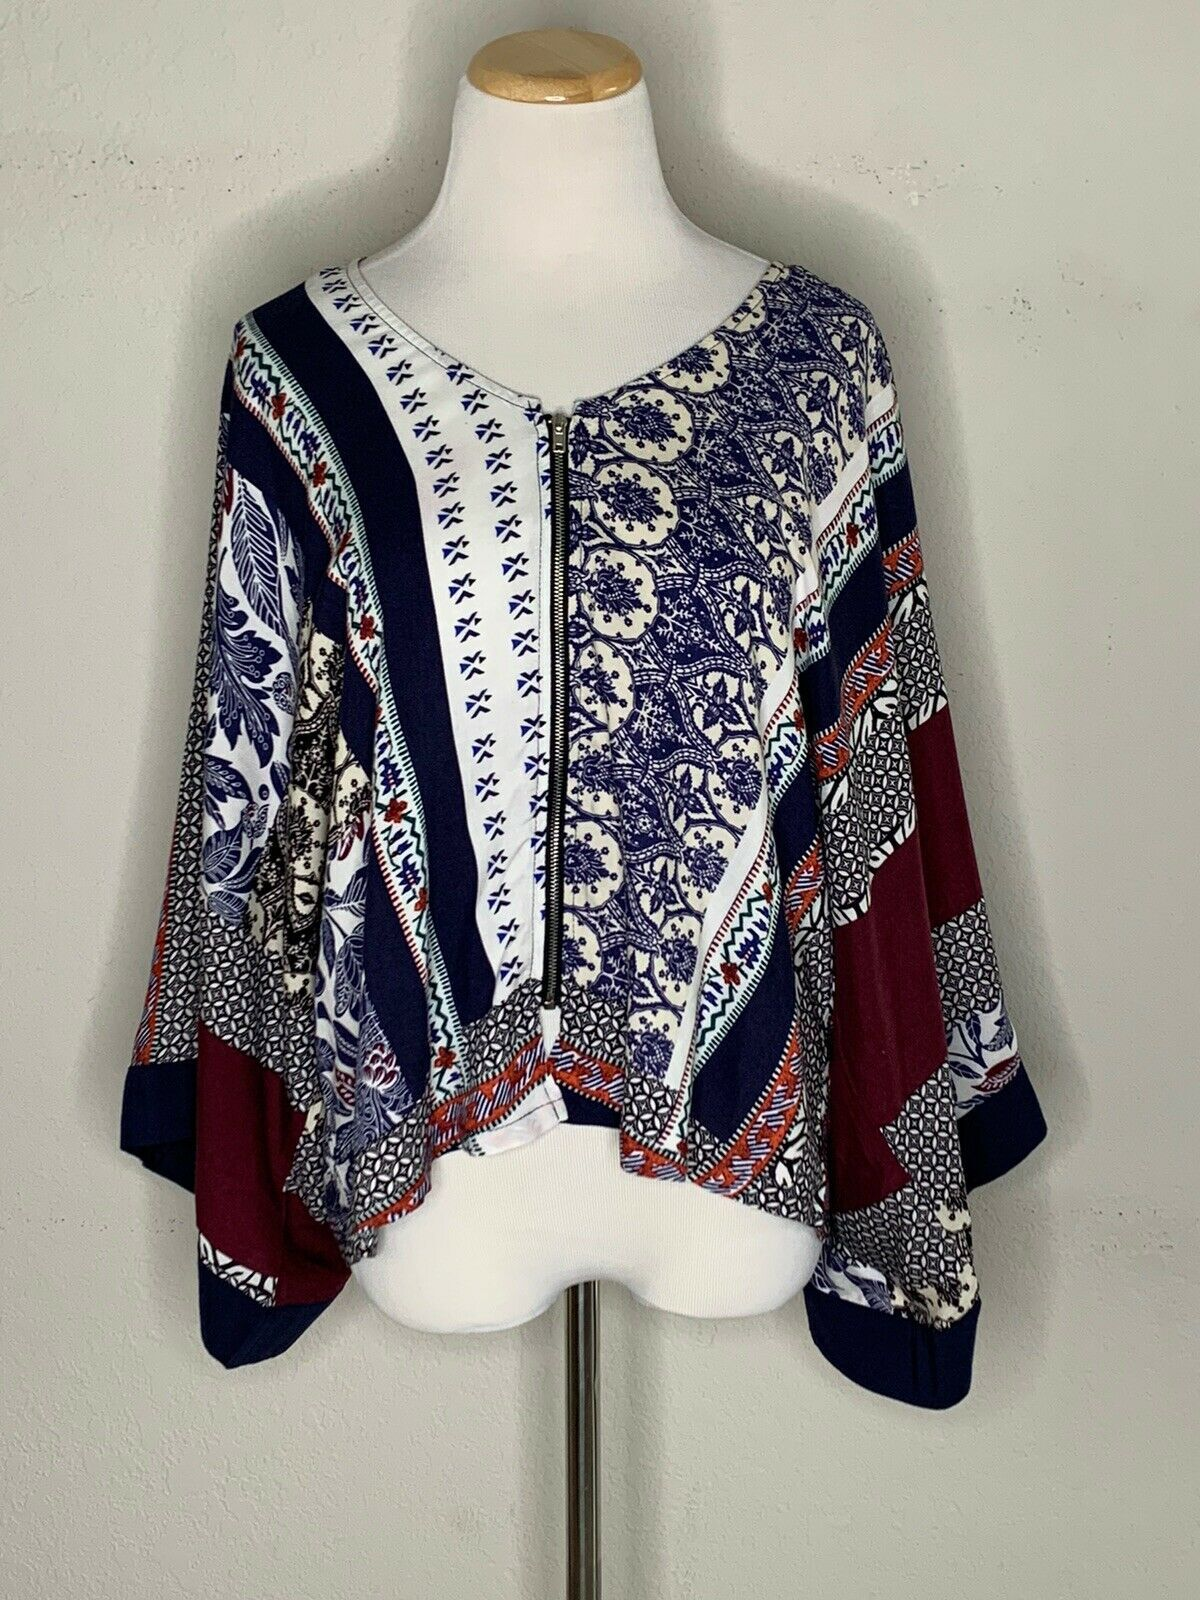 Primary image for Labor Of Love Women's Boho Blouse Floral Carousel Pattern Top Zip Sz M/L NWT